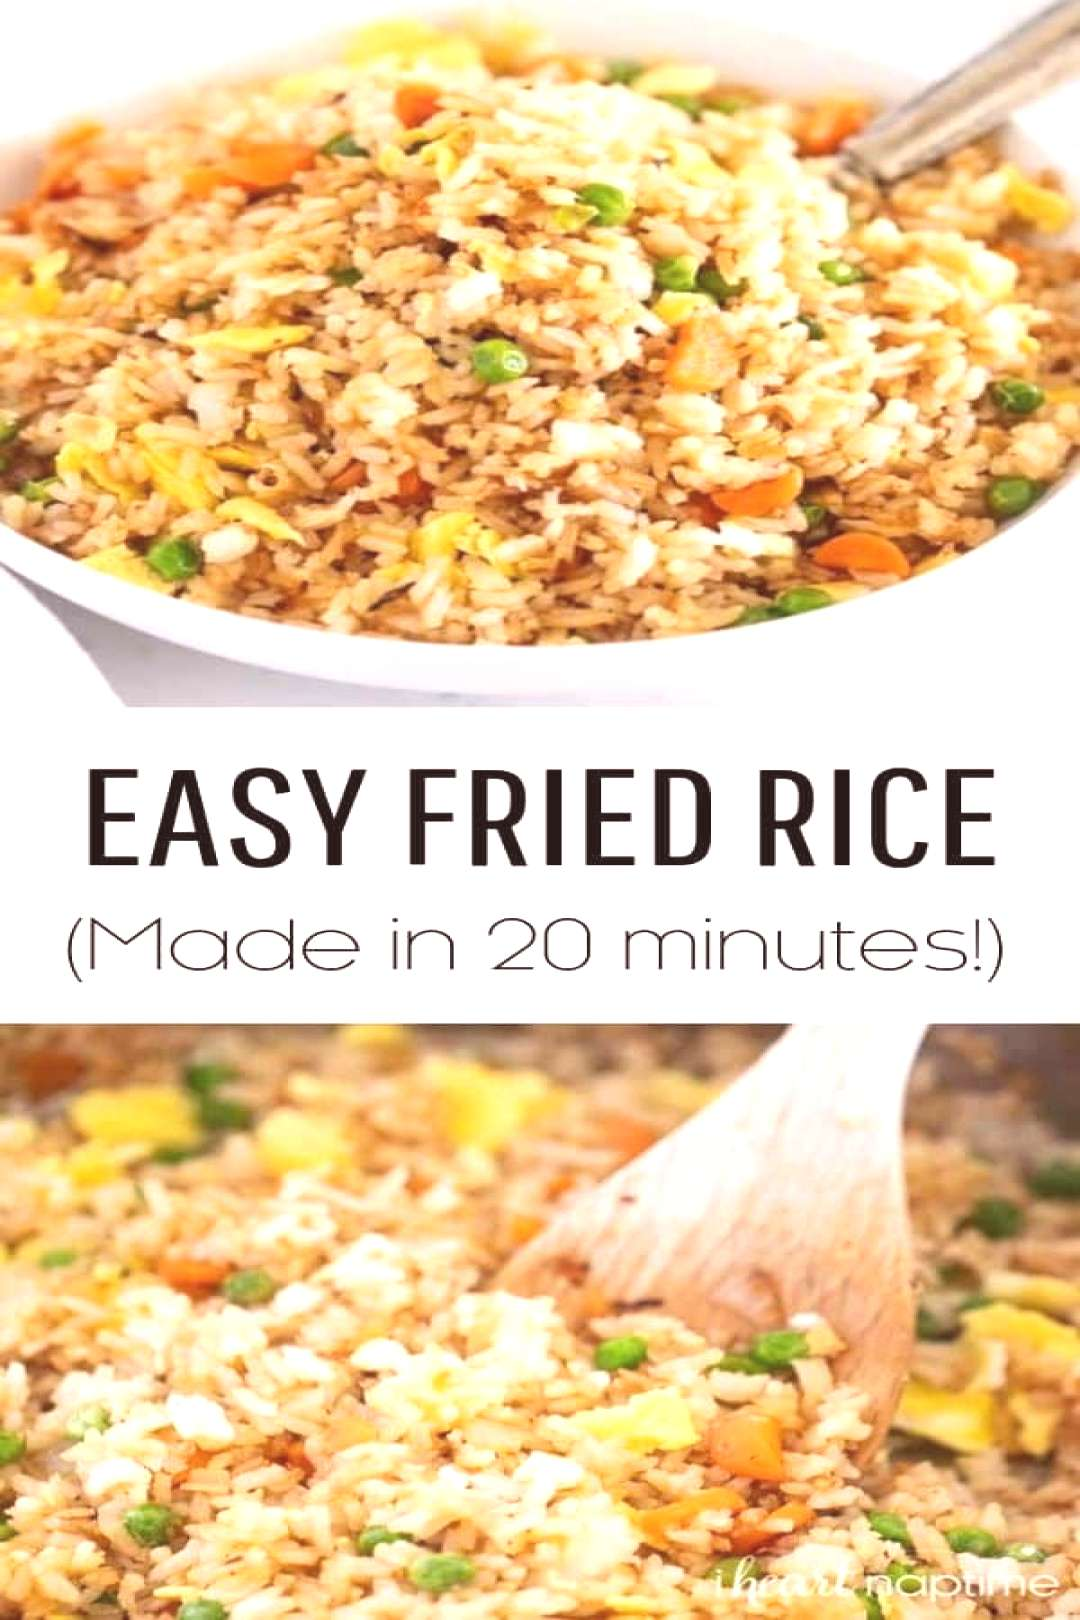 Restaurant style fried rice you can make at home in 20 minutes! The perfect way to use up leftover